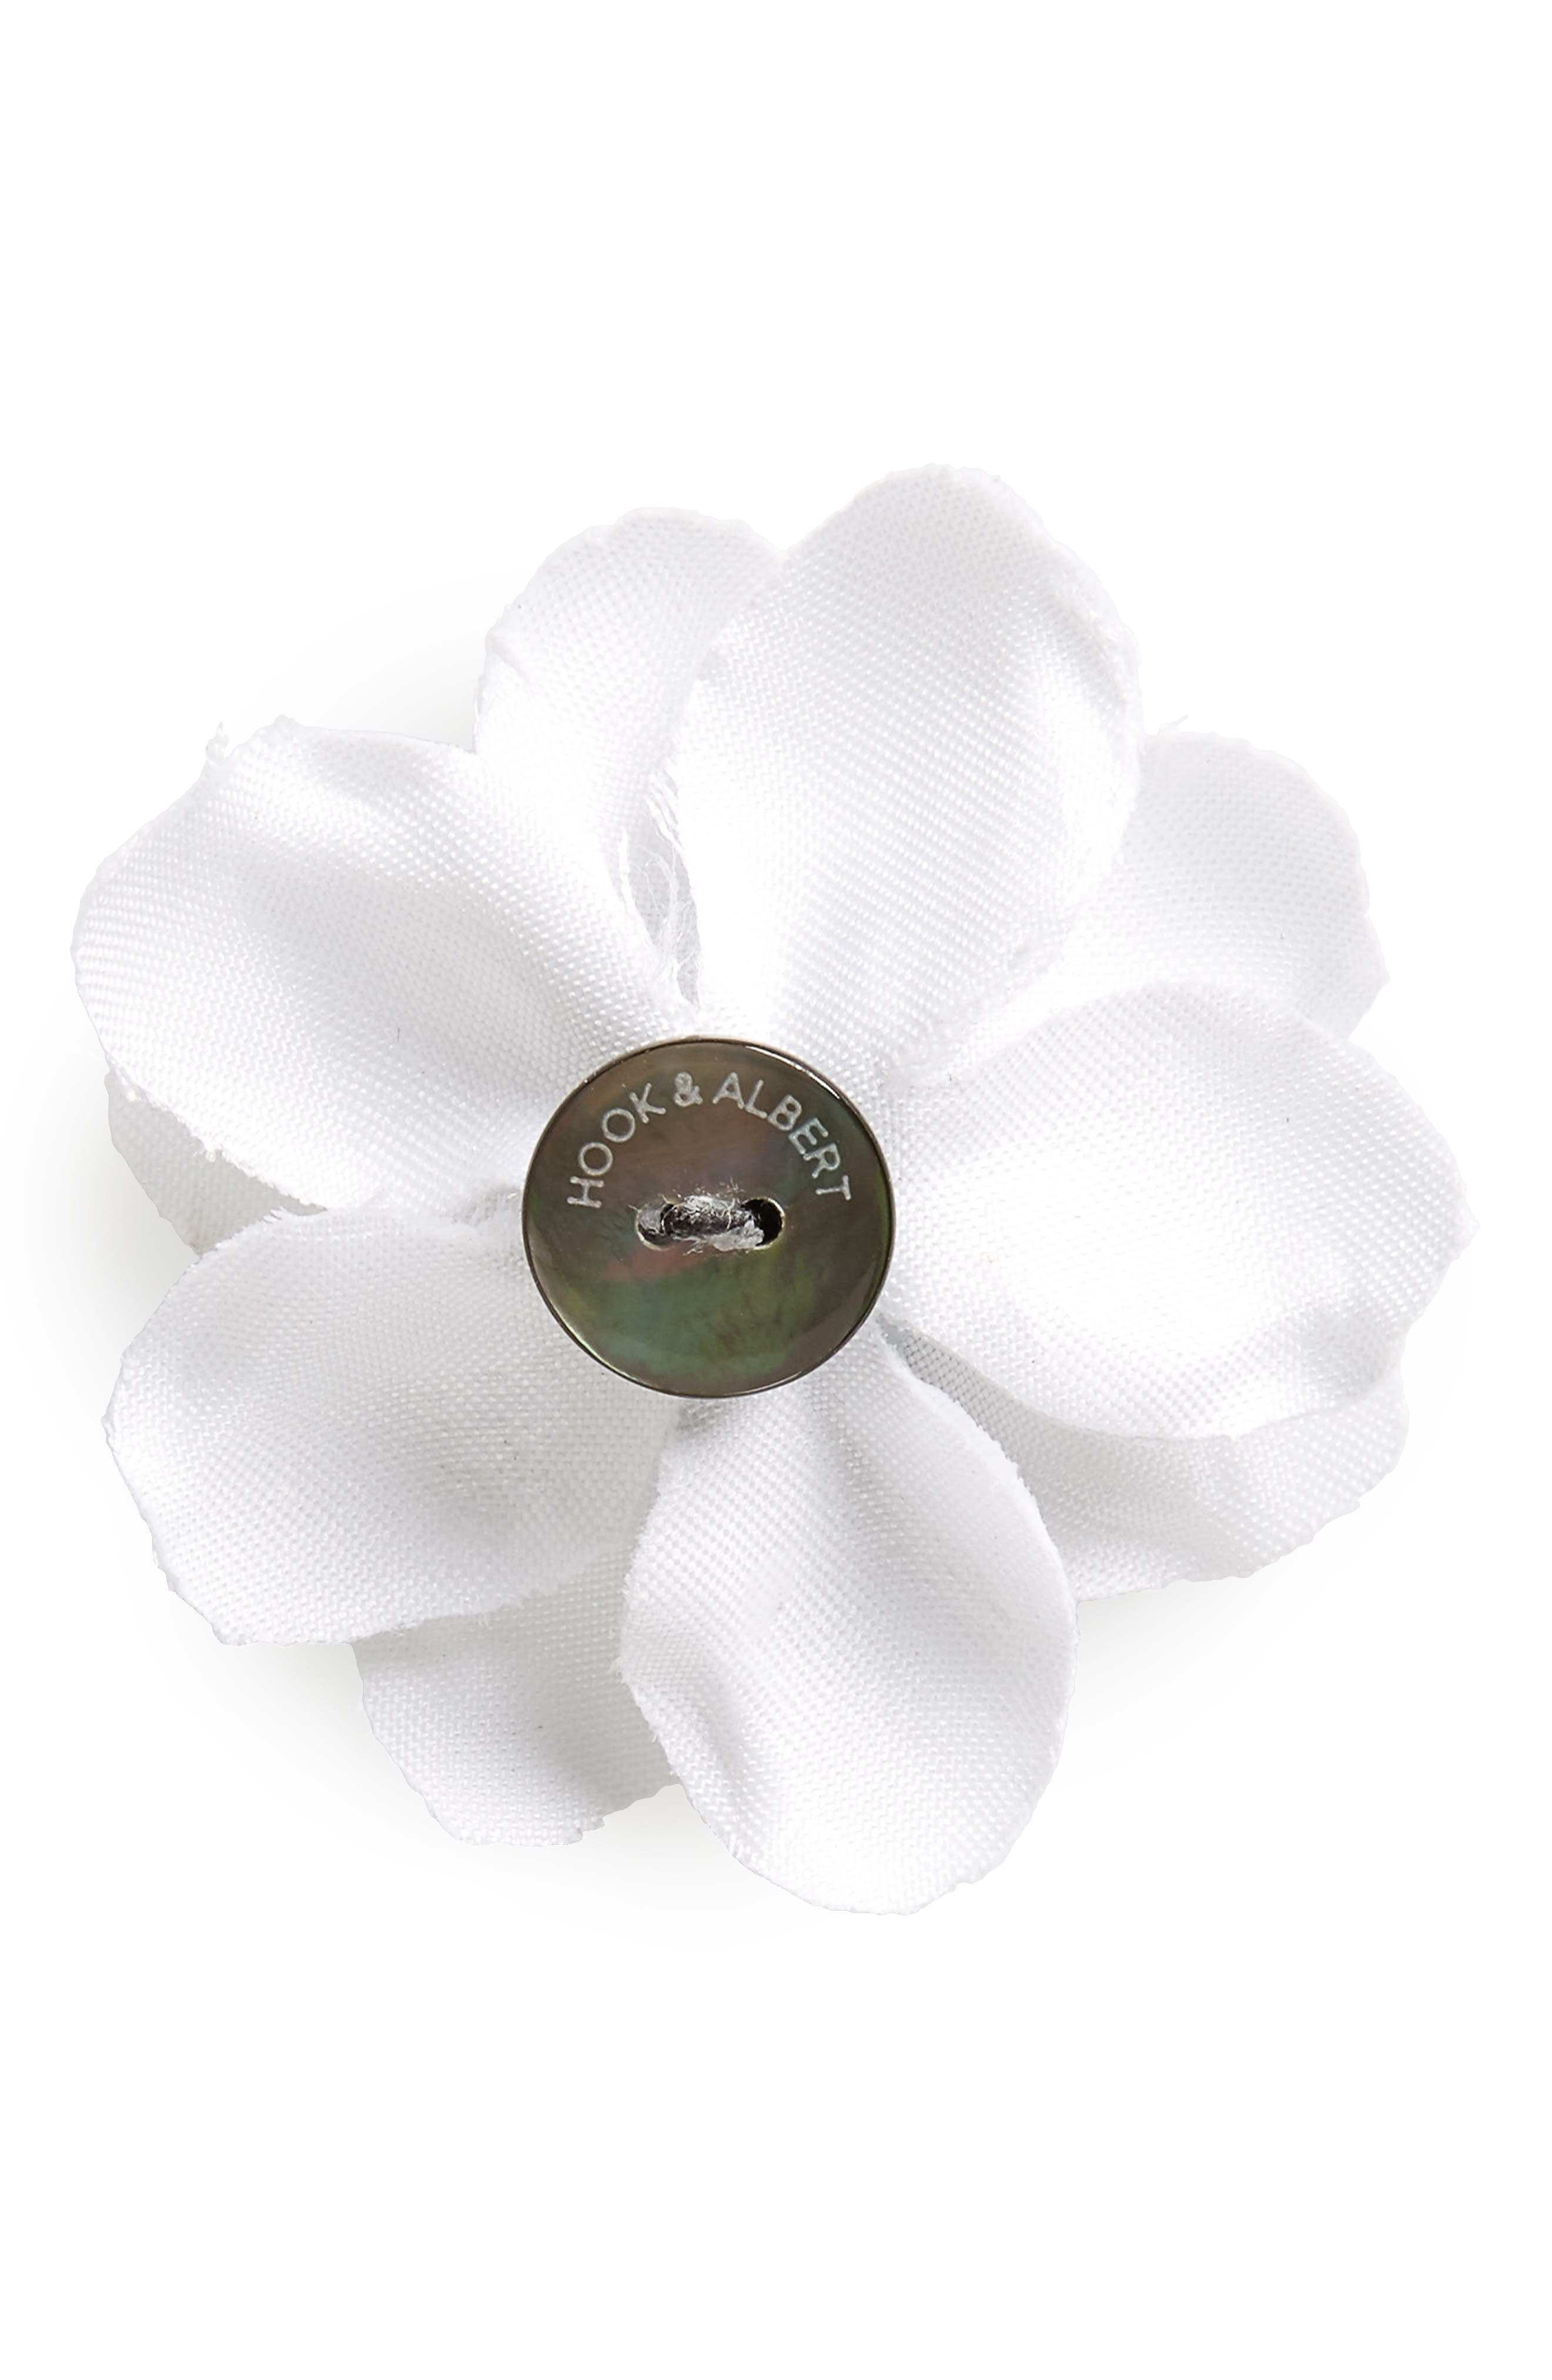 Henry Satin Lapel Flower,                             Alternate thumbnail 2, color,                             White With Navy